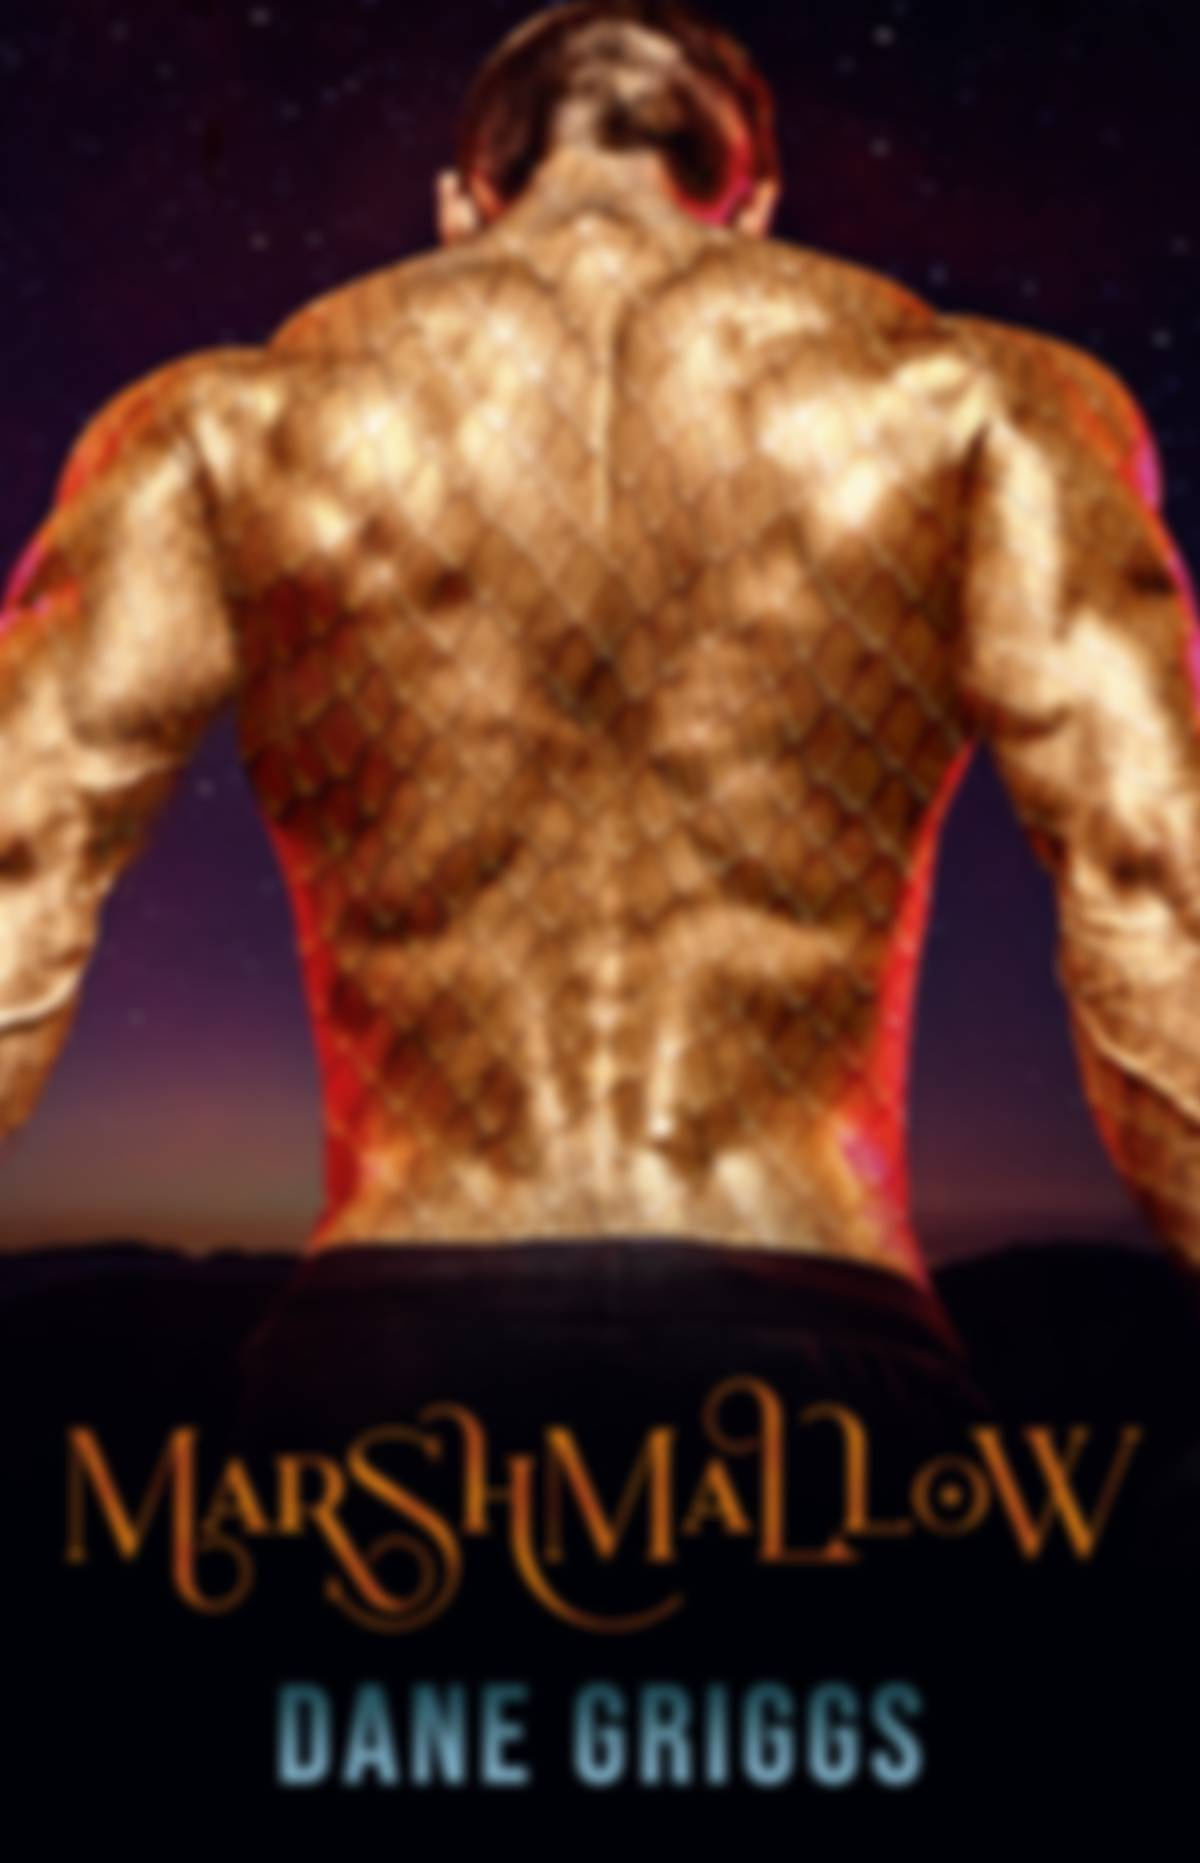 Book cover for Marshmallow by Dane Griggs. Featuring a muscular man's back